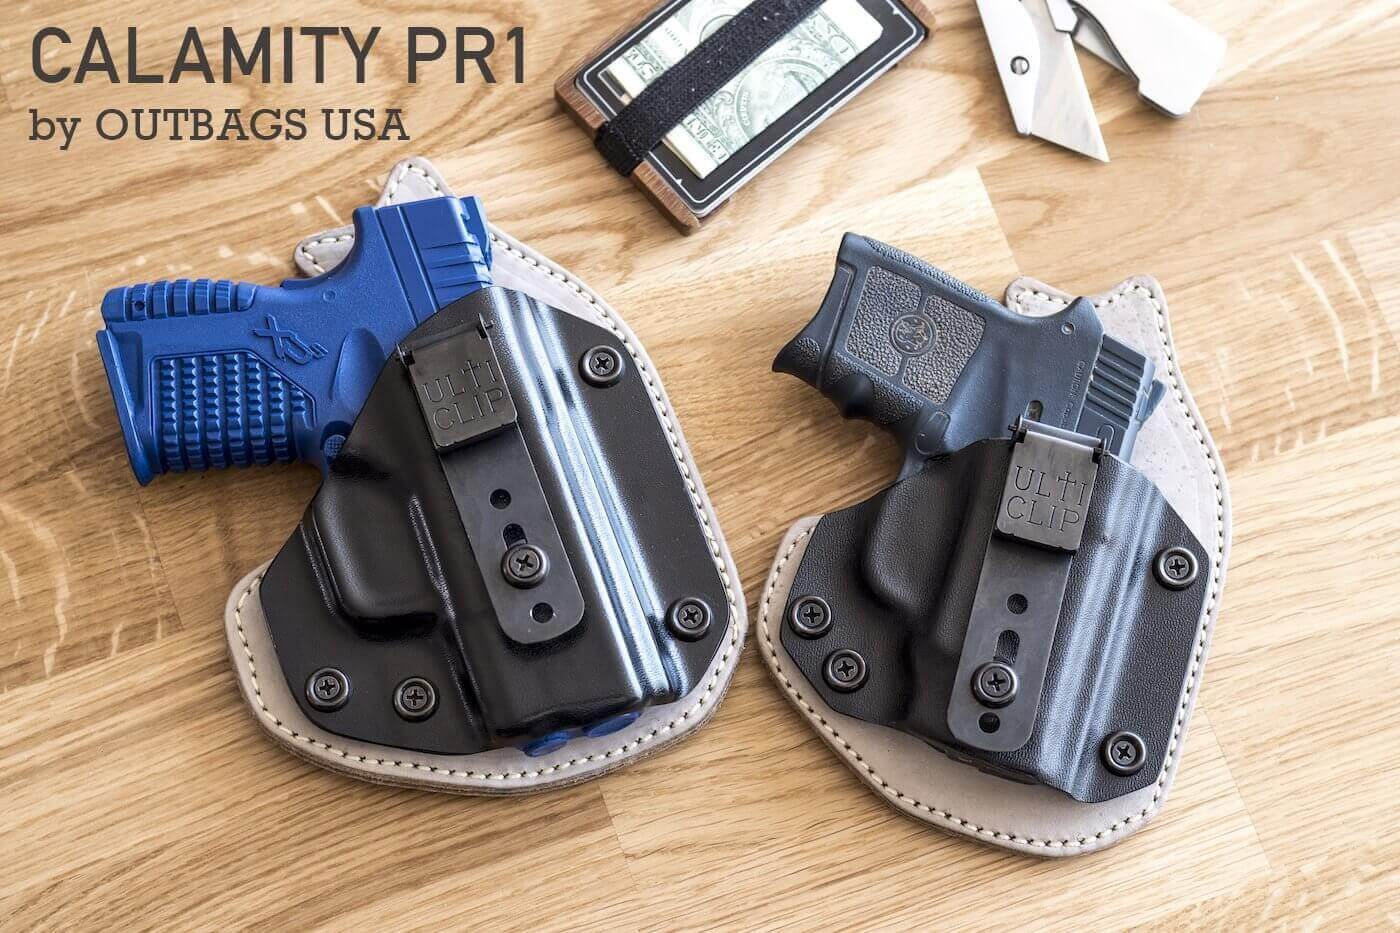 The Calamity PR1 by OUTBAGS USA